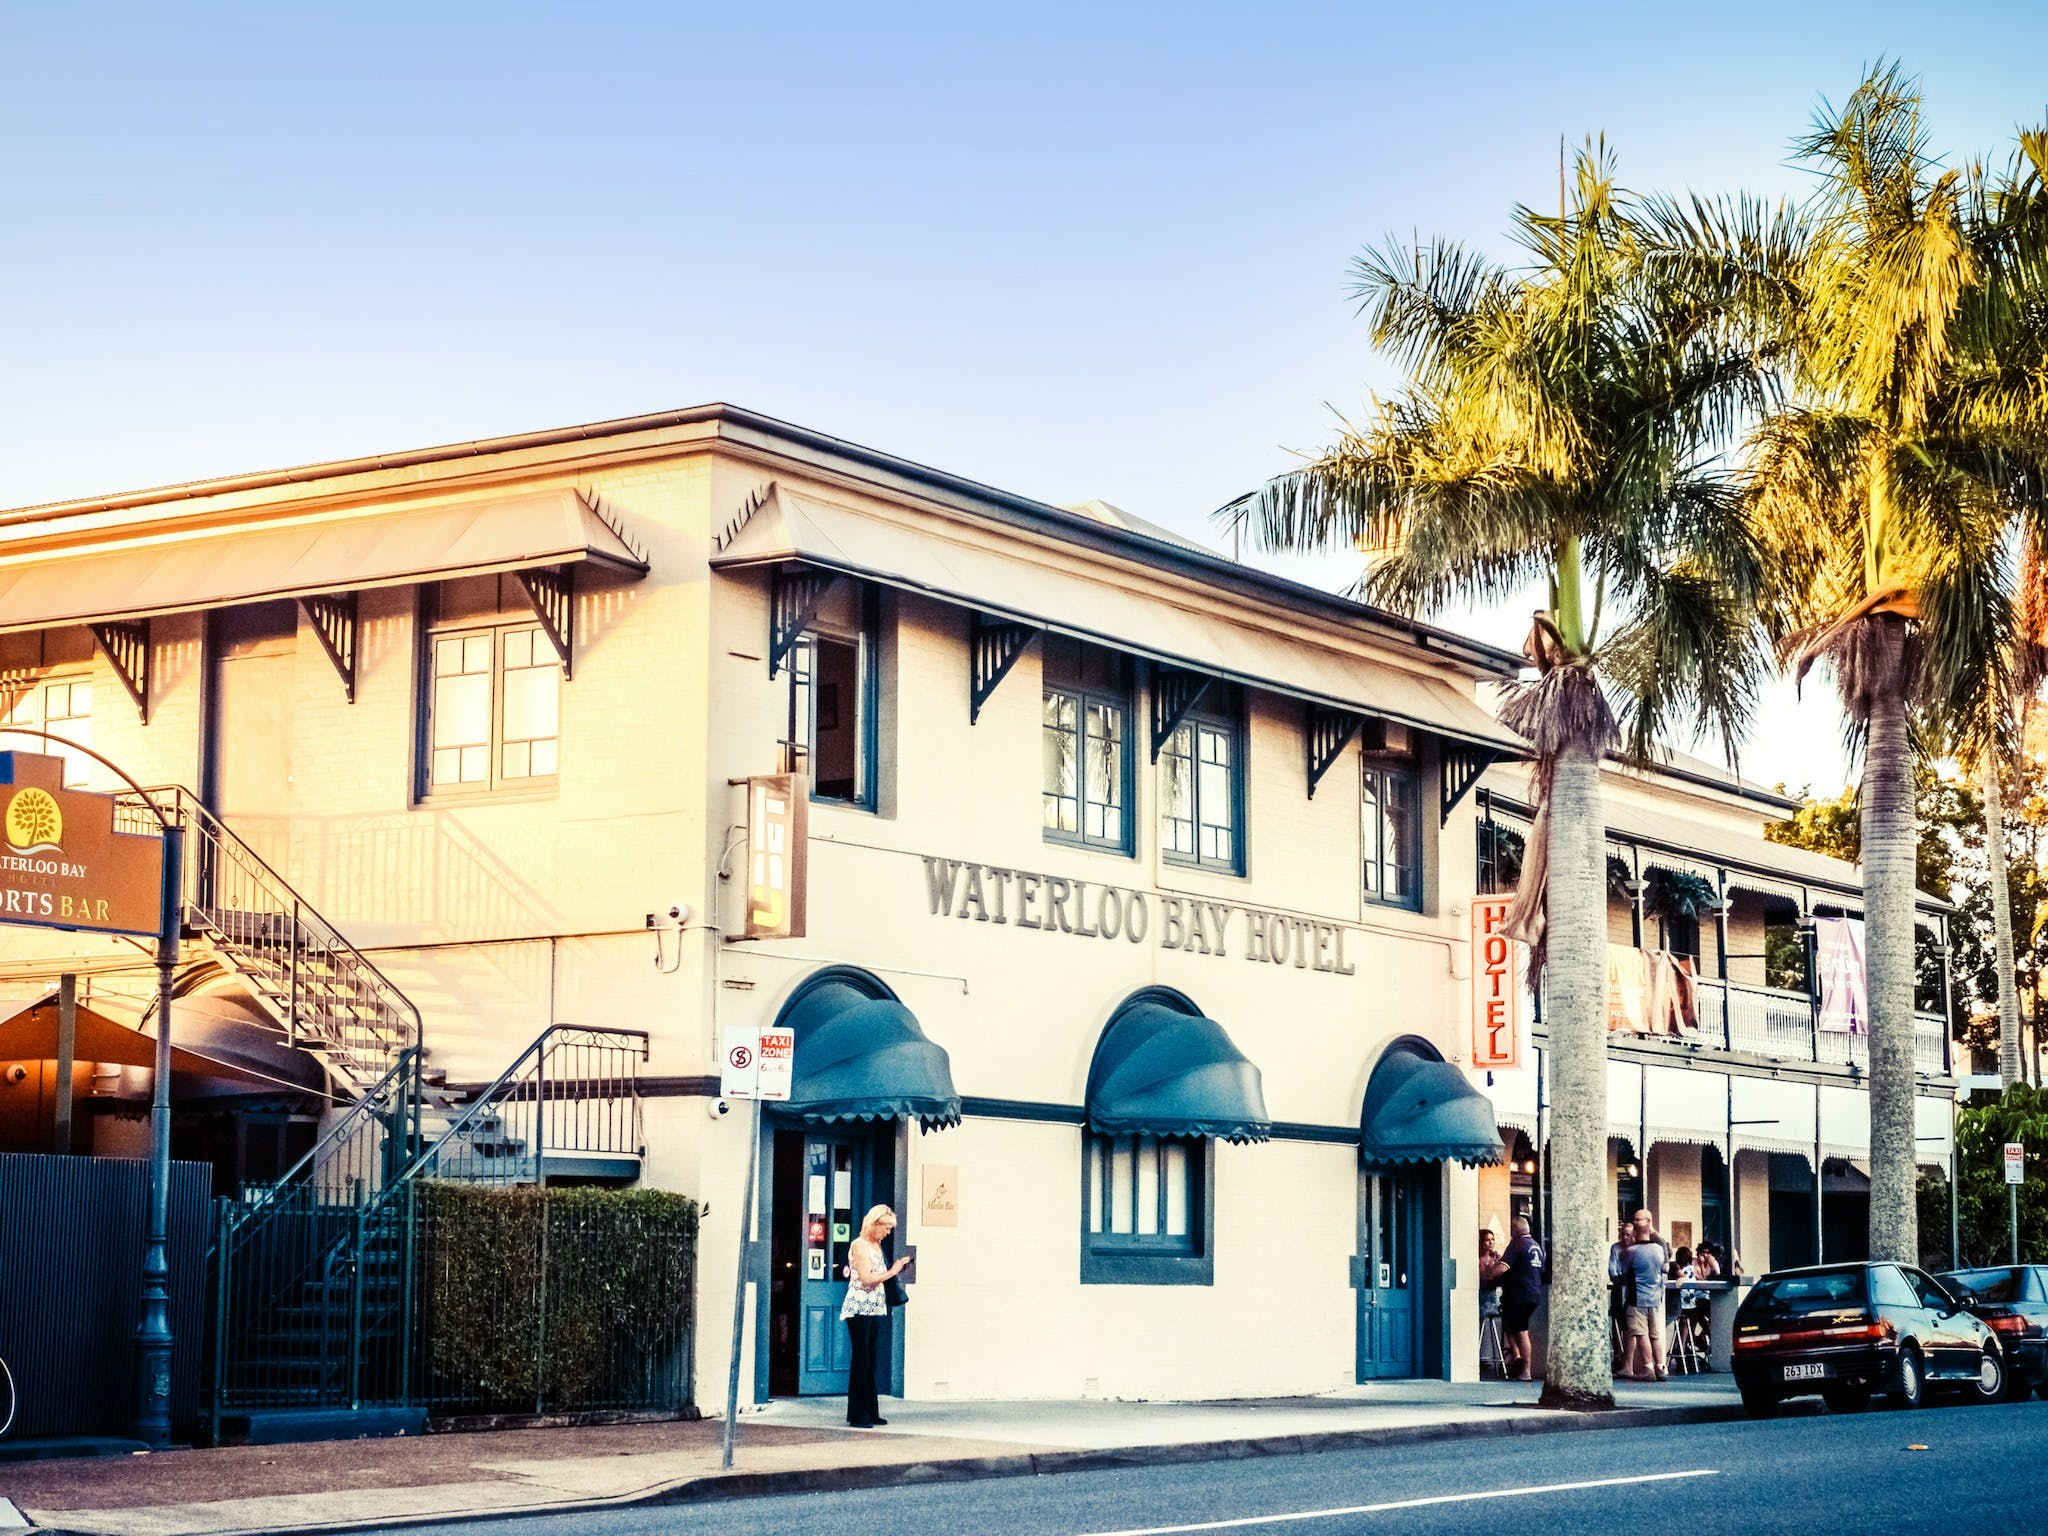 The Waterloo Bay Hotel - Port Augusta Accommodation